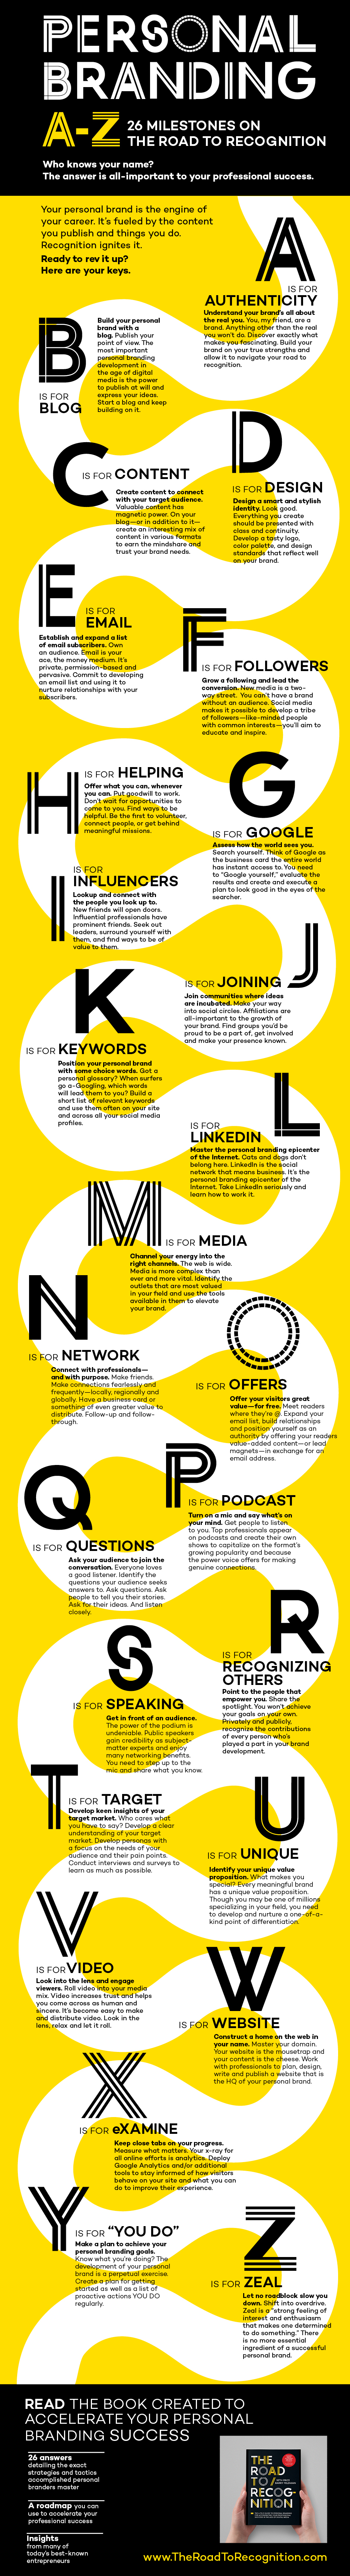 Personal Branding A to Z Infographic